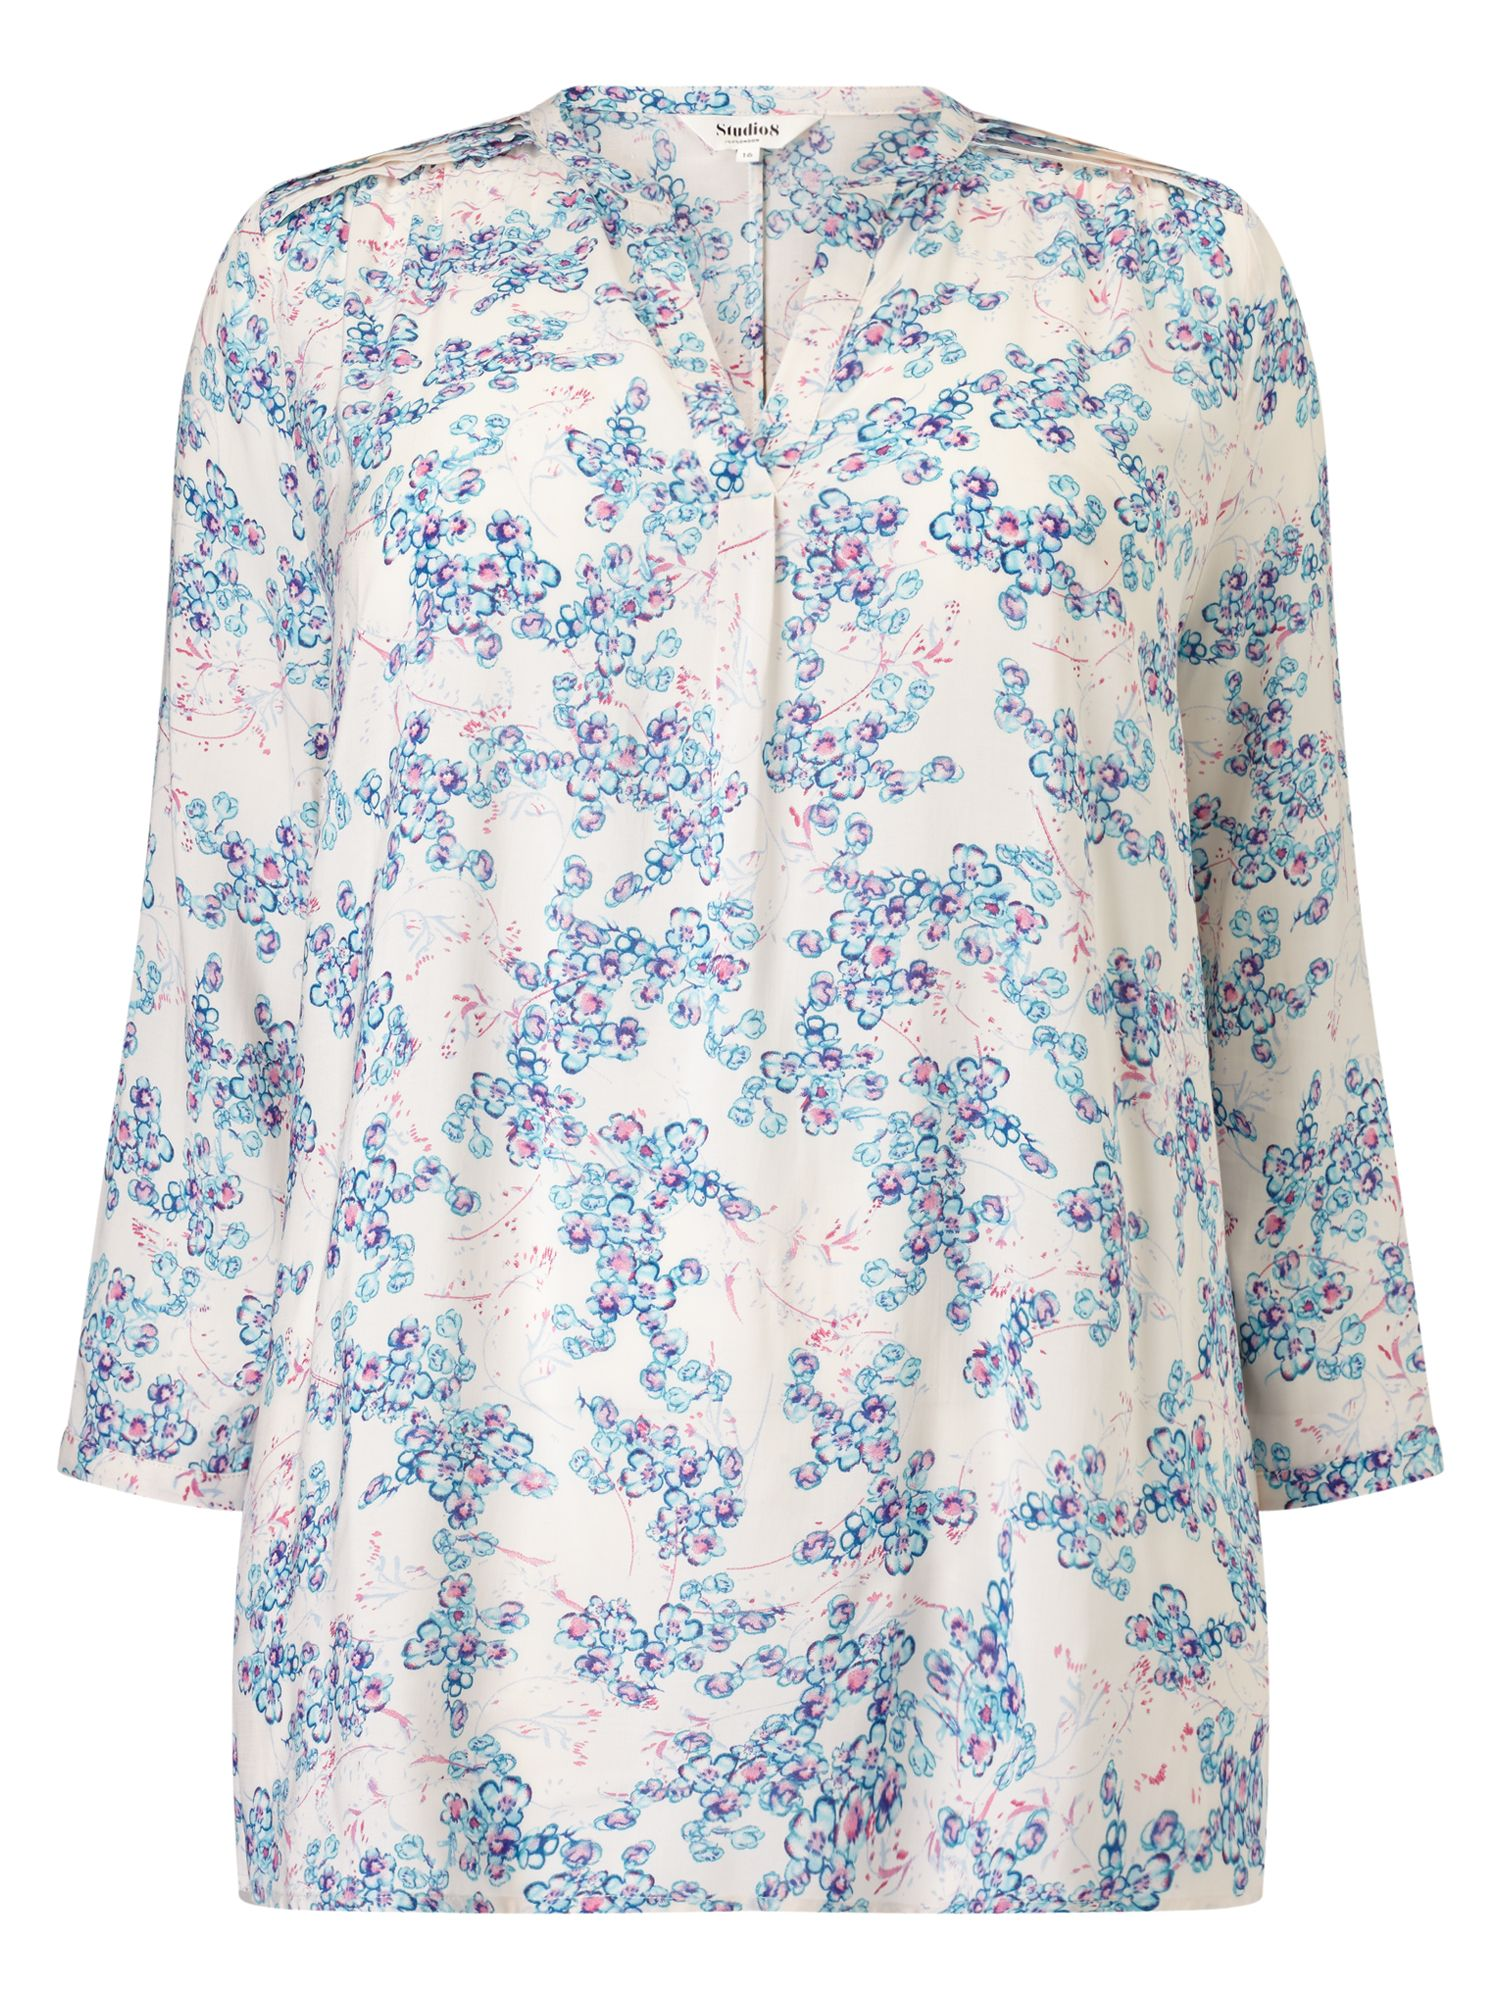 Studio 8 Flora Blouse, Multi-Coloured